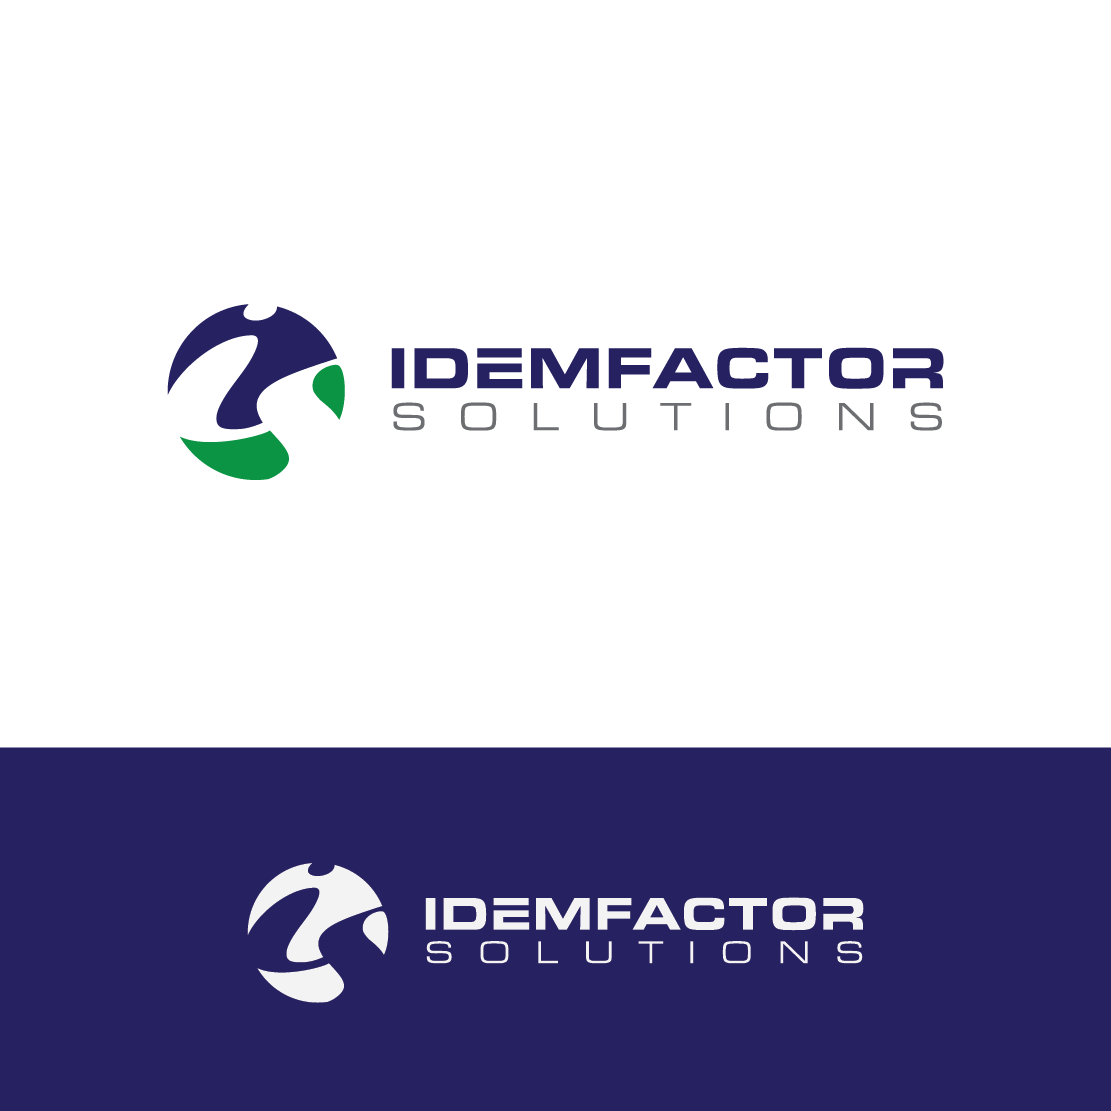 Help Idemfactor Solutions with a new logo